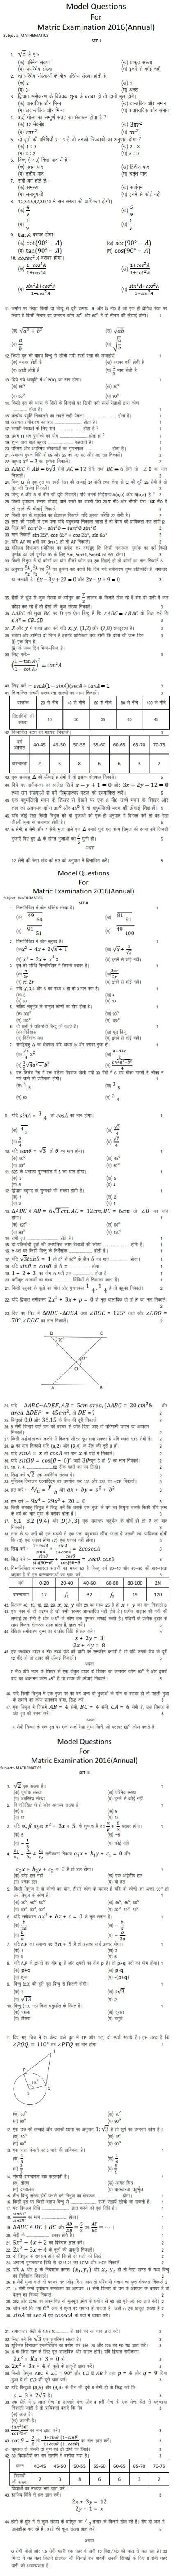 Bihar Board Class X Model Question Papers - Mathmatics